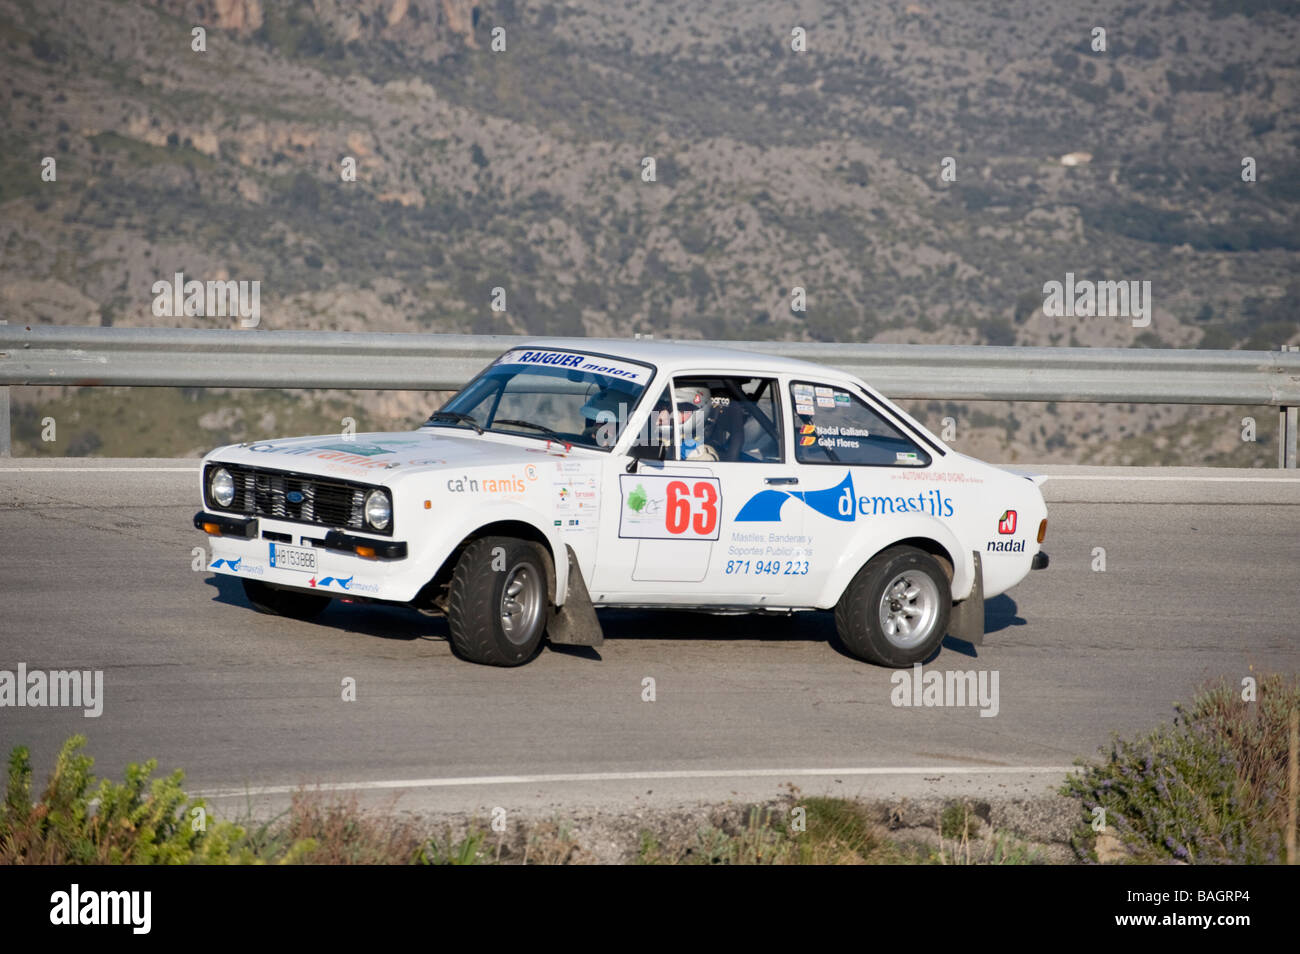 Side view of a white 1975 Ford Escort classic sports car racing in the Classic car rally Mallorca - Stock Image